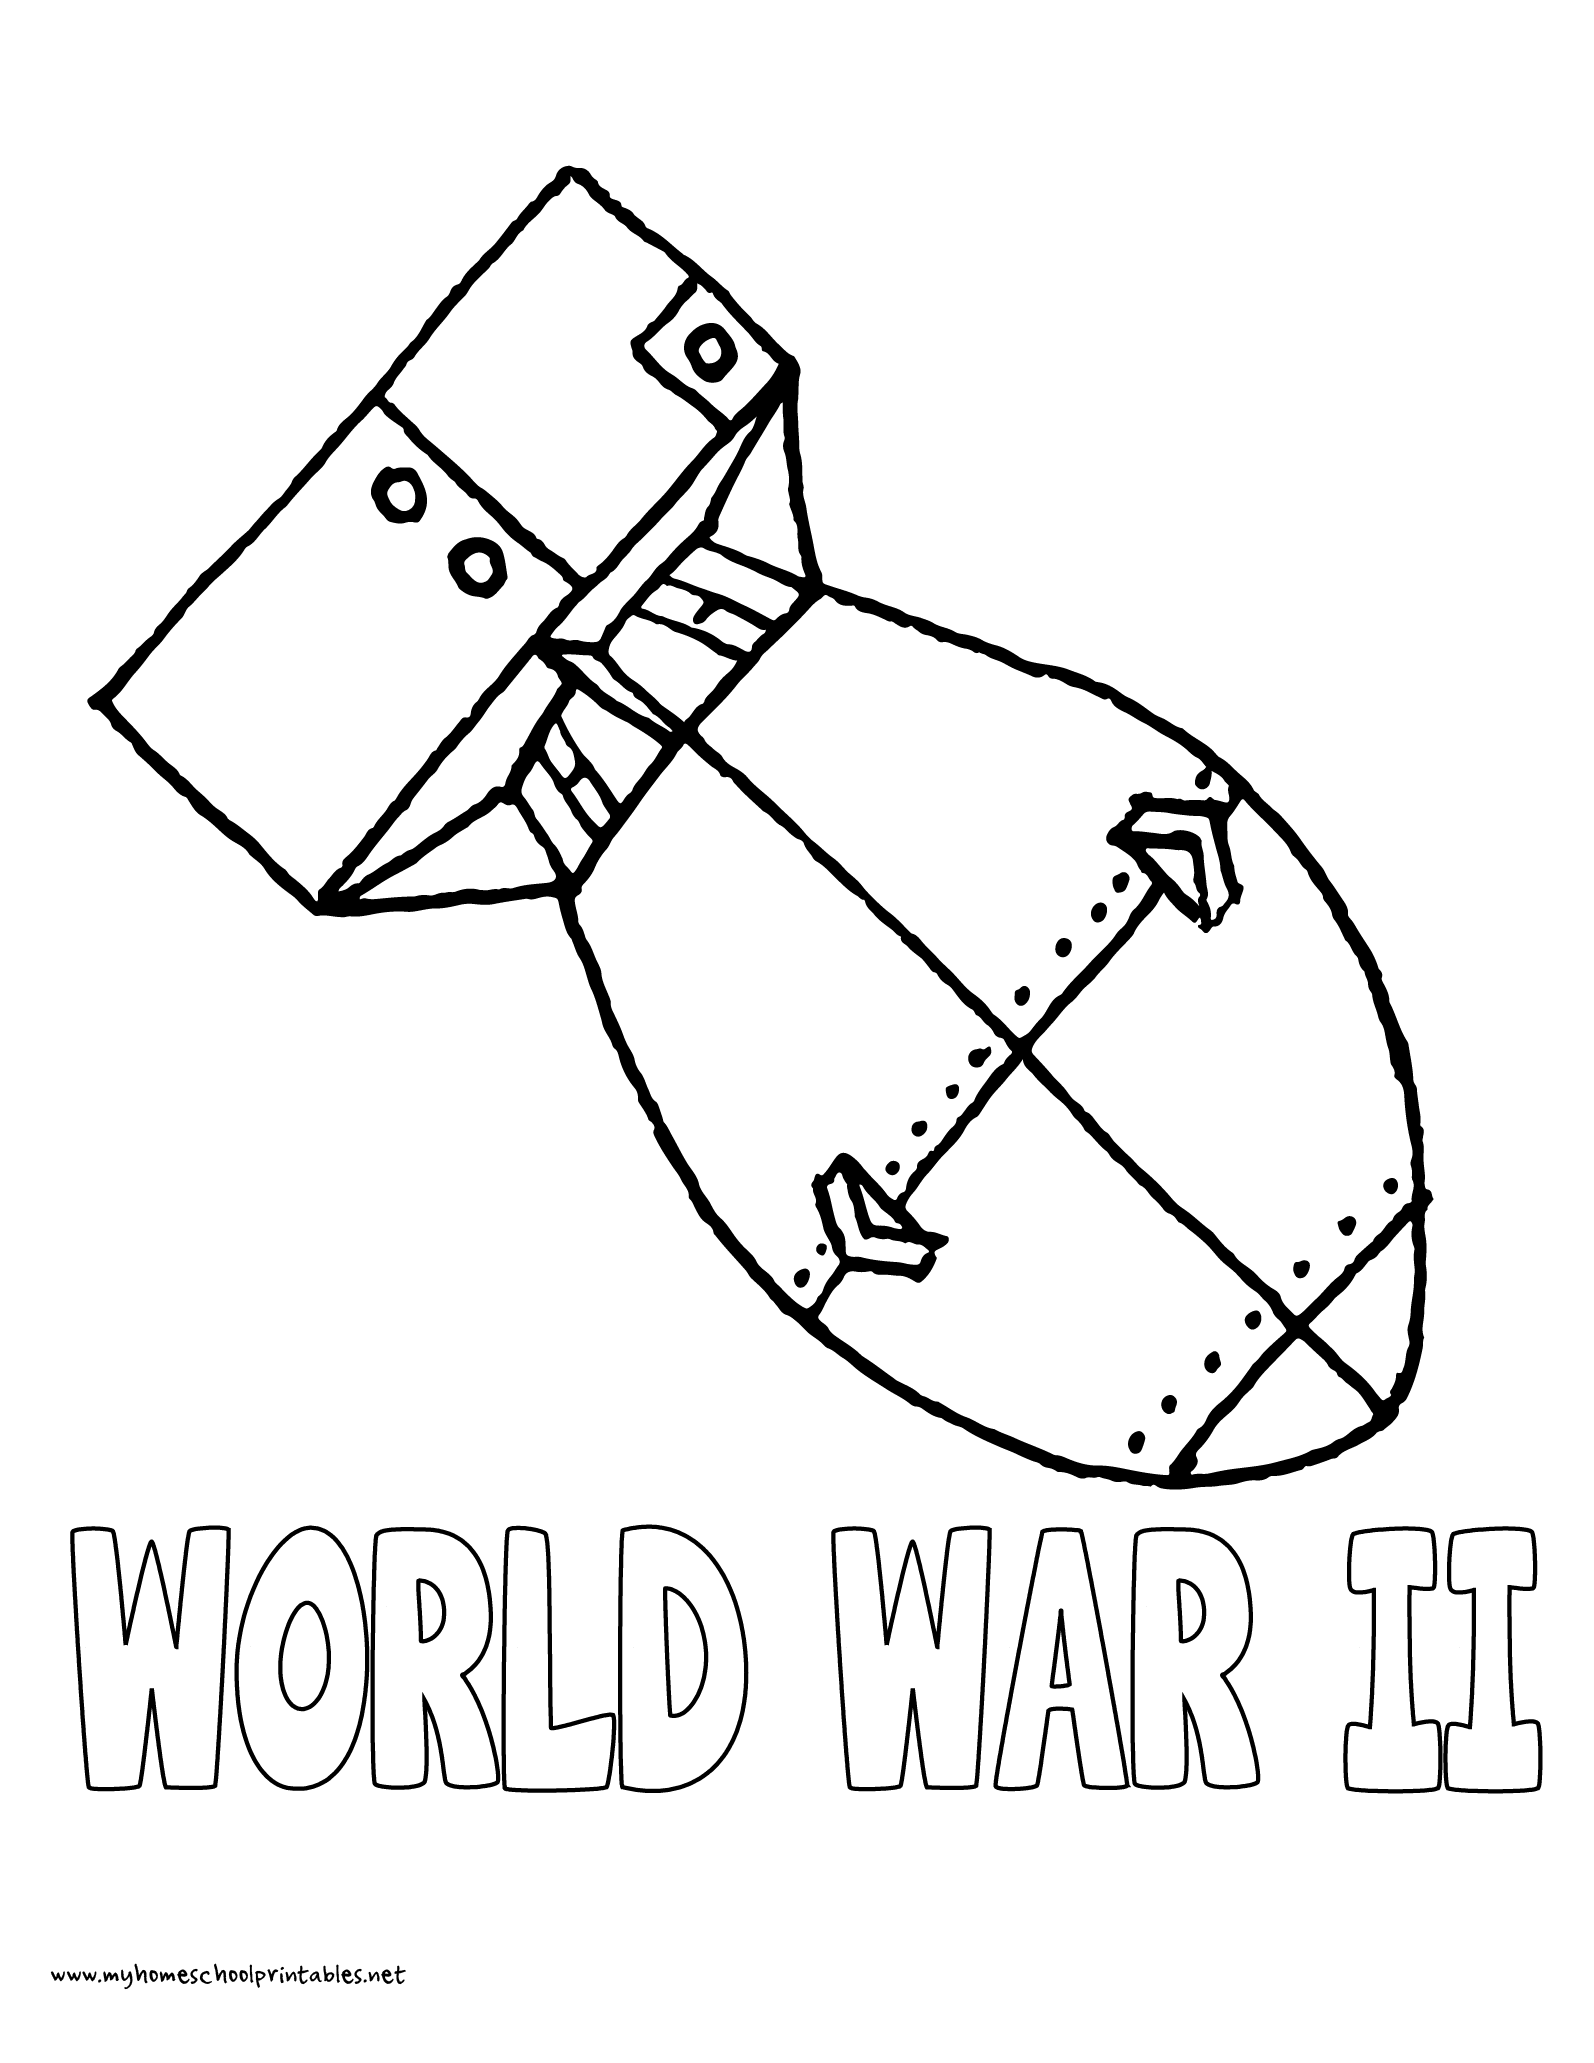 world war ii coloring pages world war ii coloring pages free food ideas war world ii coloring pages